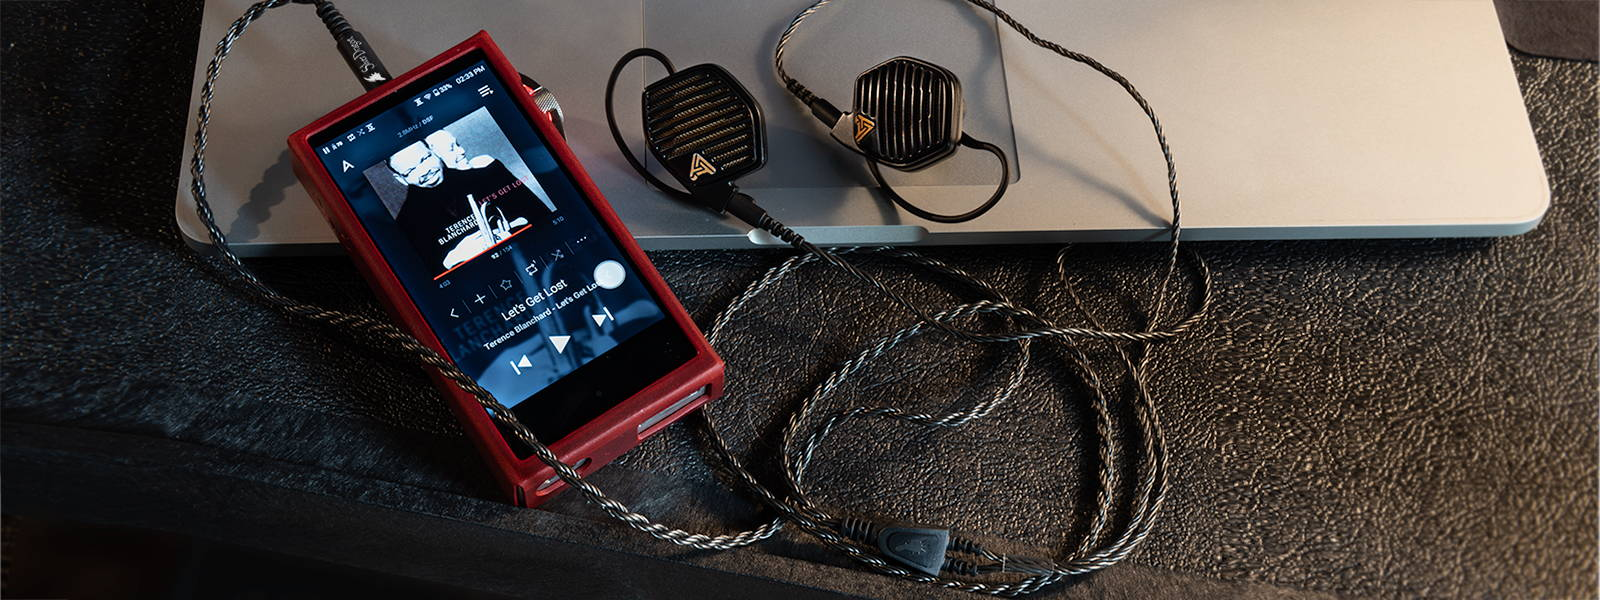 Audeze LCD-i4 IEM with Silver Dragon IEM Cable connected to Astell&Kern SA700 DAP